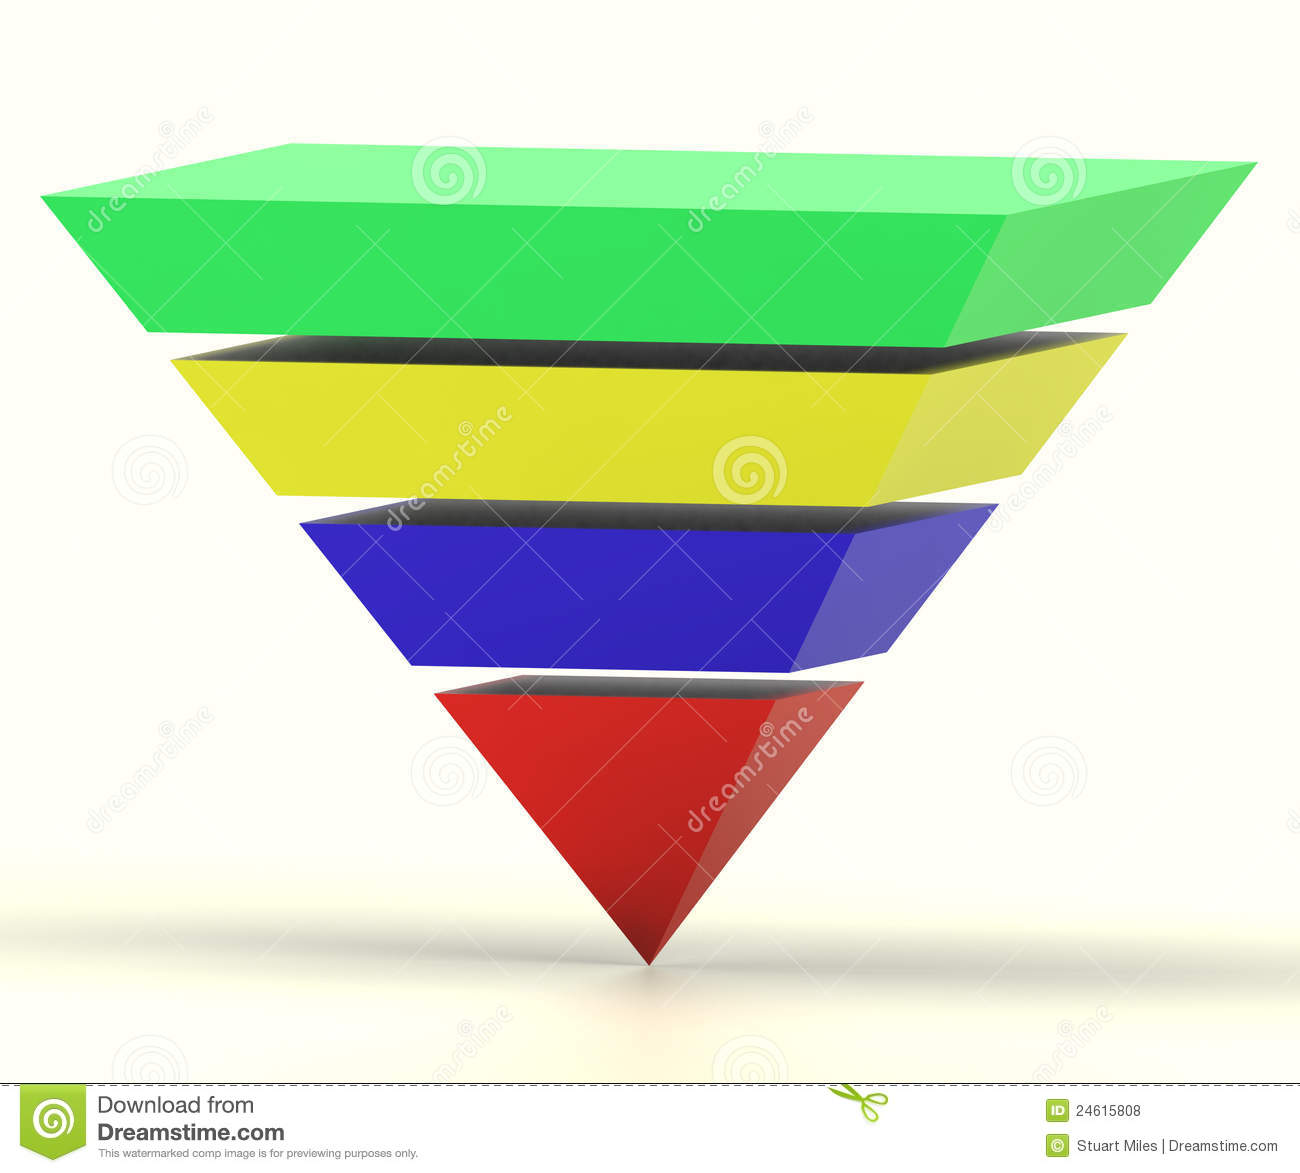 Inverted Pyramid With Segments Shows Hierarchy Stock